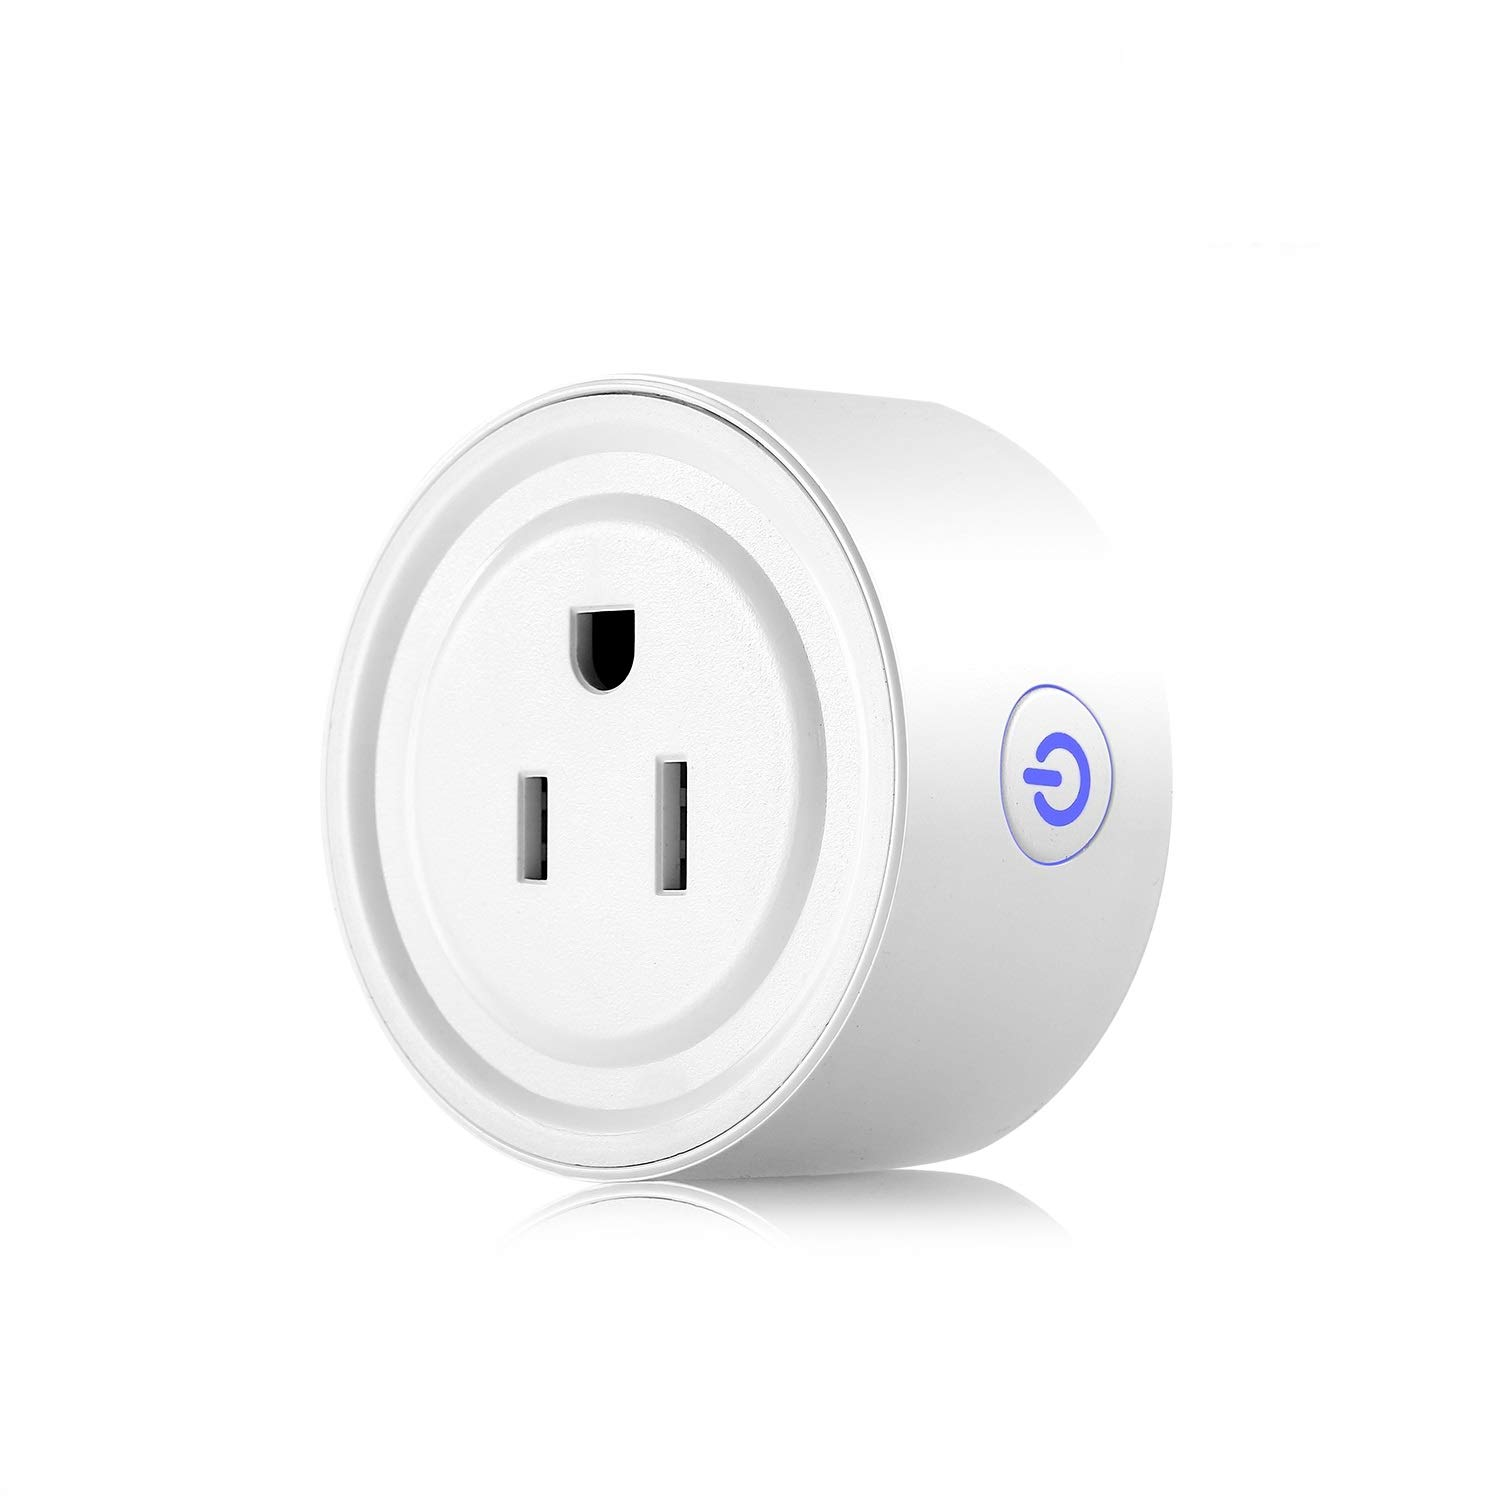 Apromio Round 10A Wi-Fi Enabled Mini Socket Works with Amazon Alexa Google Home Smart Plug